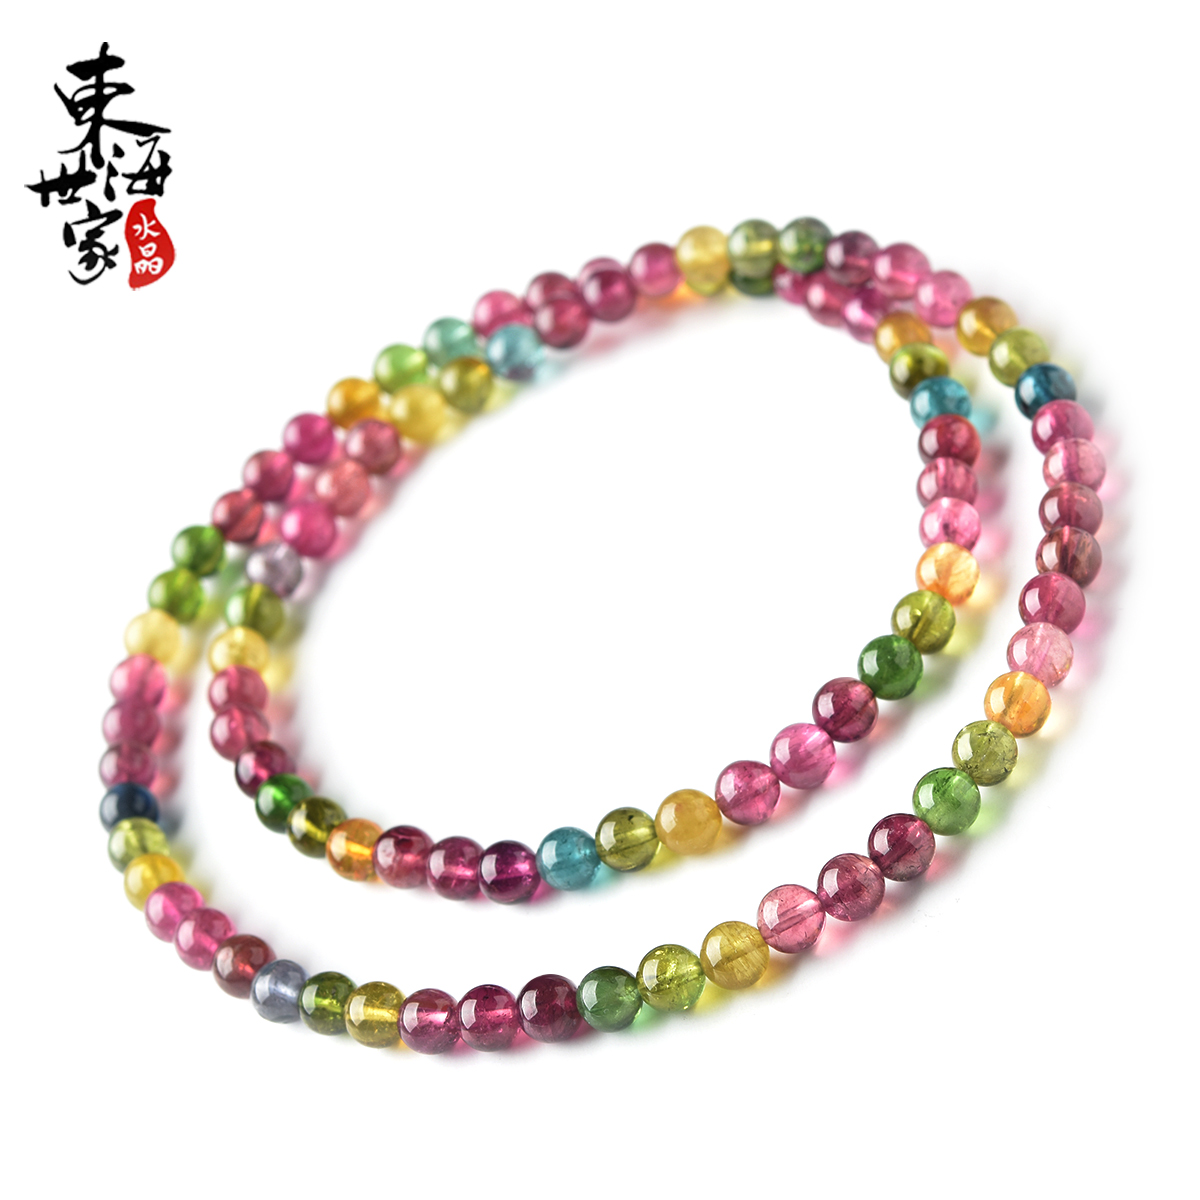 East China Sea Family Tourmaline Bracelet Female Candy Rainbow Brazilian Old Pit Single Ring Multi Ring Tourmaline Hand String Hanging Ring